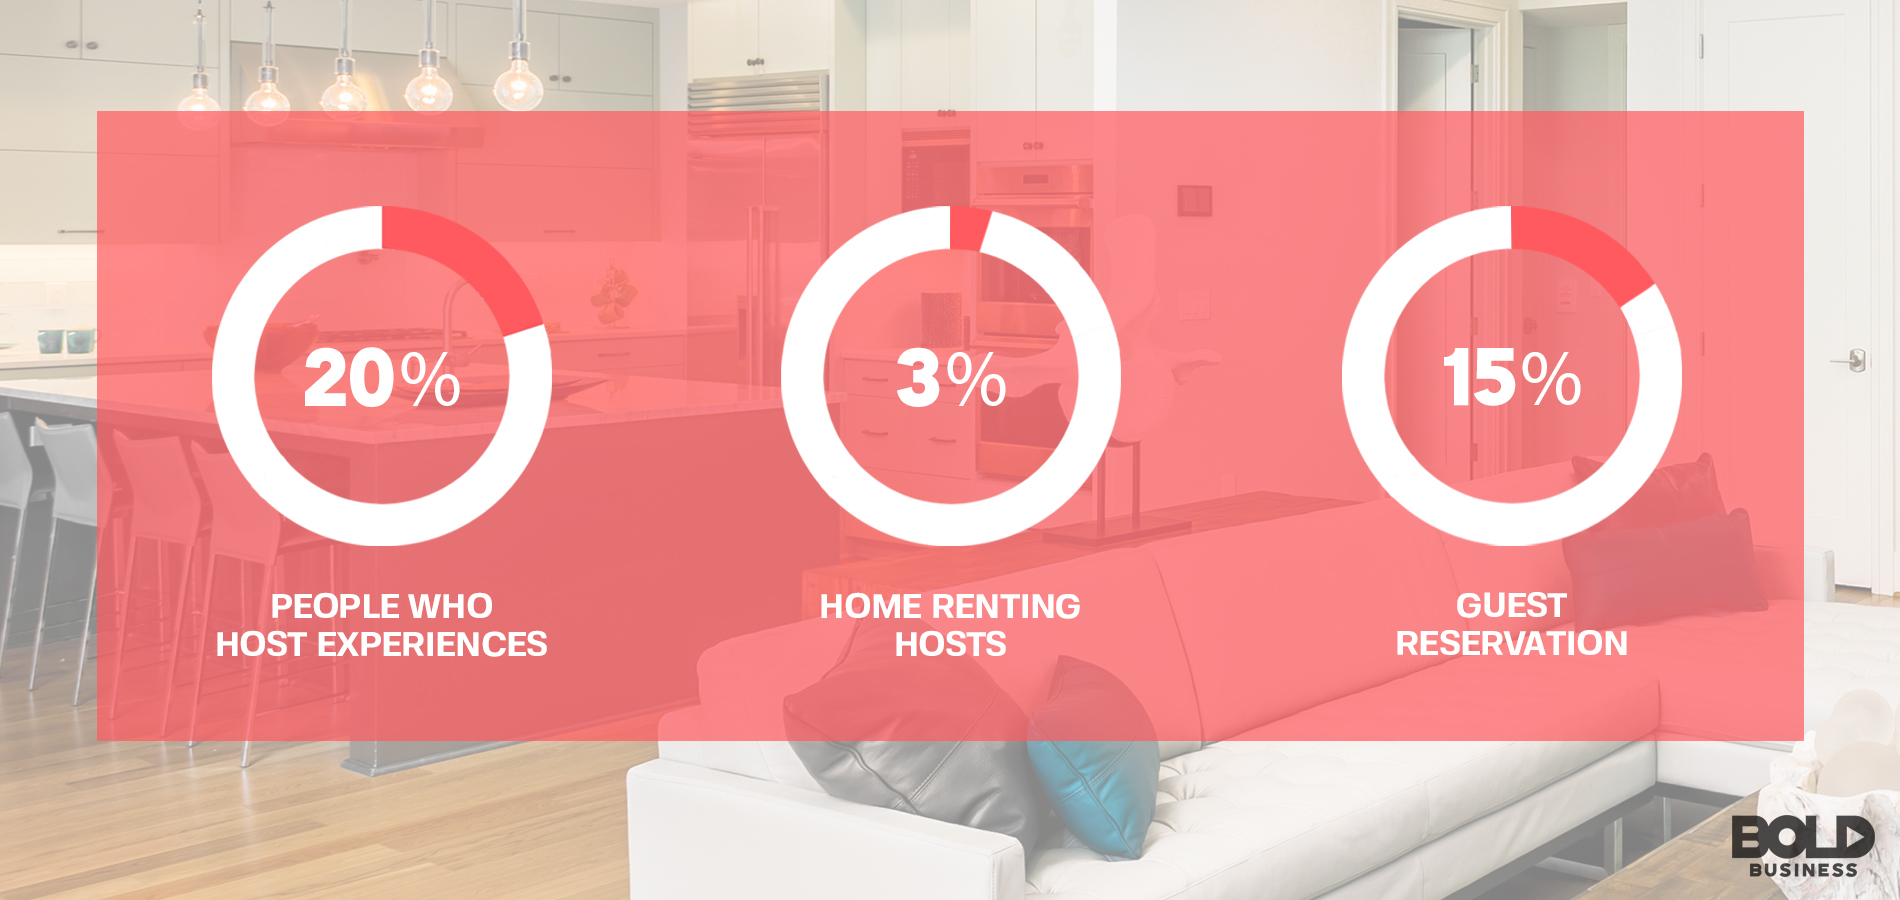 a photo containing three percentages showing statistics related to the topic of the service Experiences on Airbnb